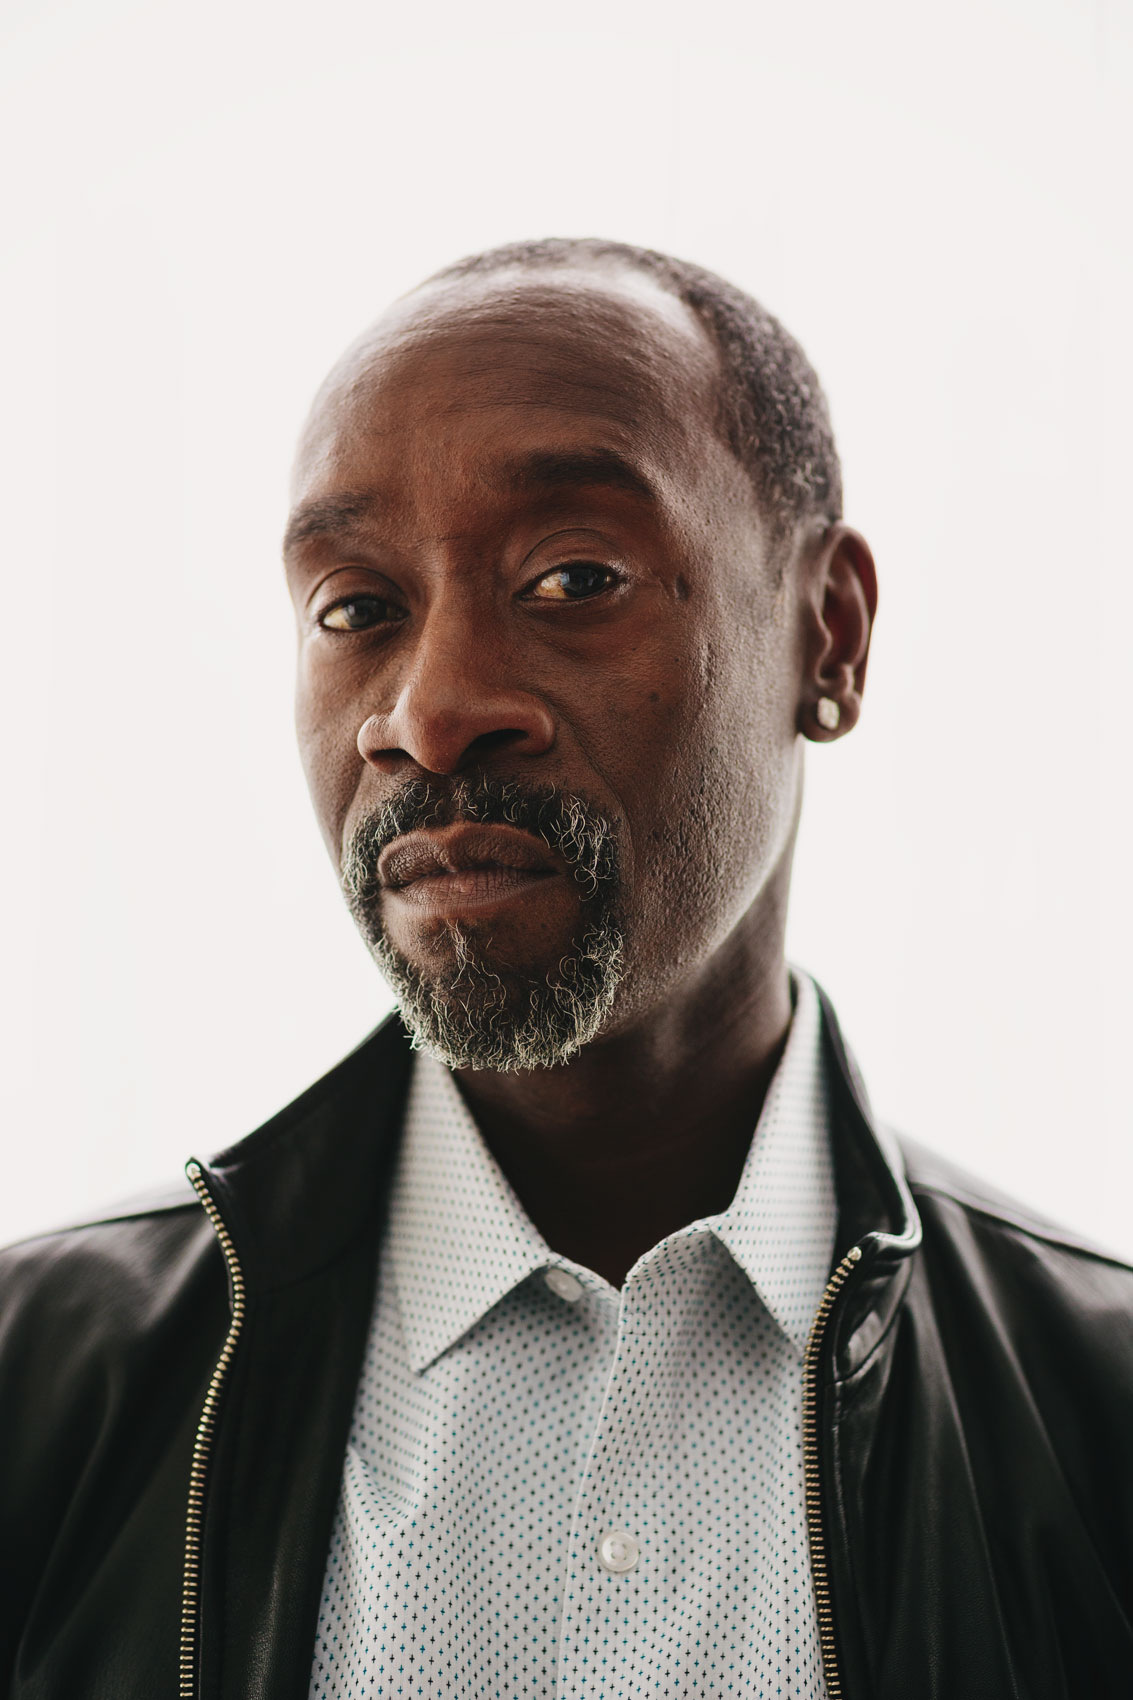 avengers actor don cheadle for washington dc editorial photography